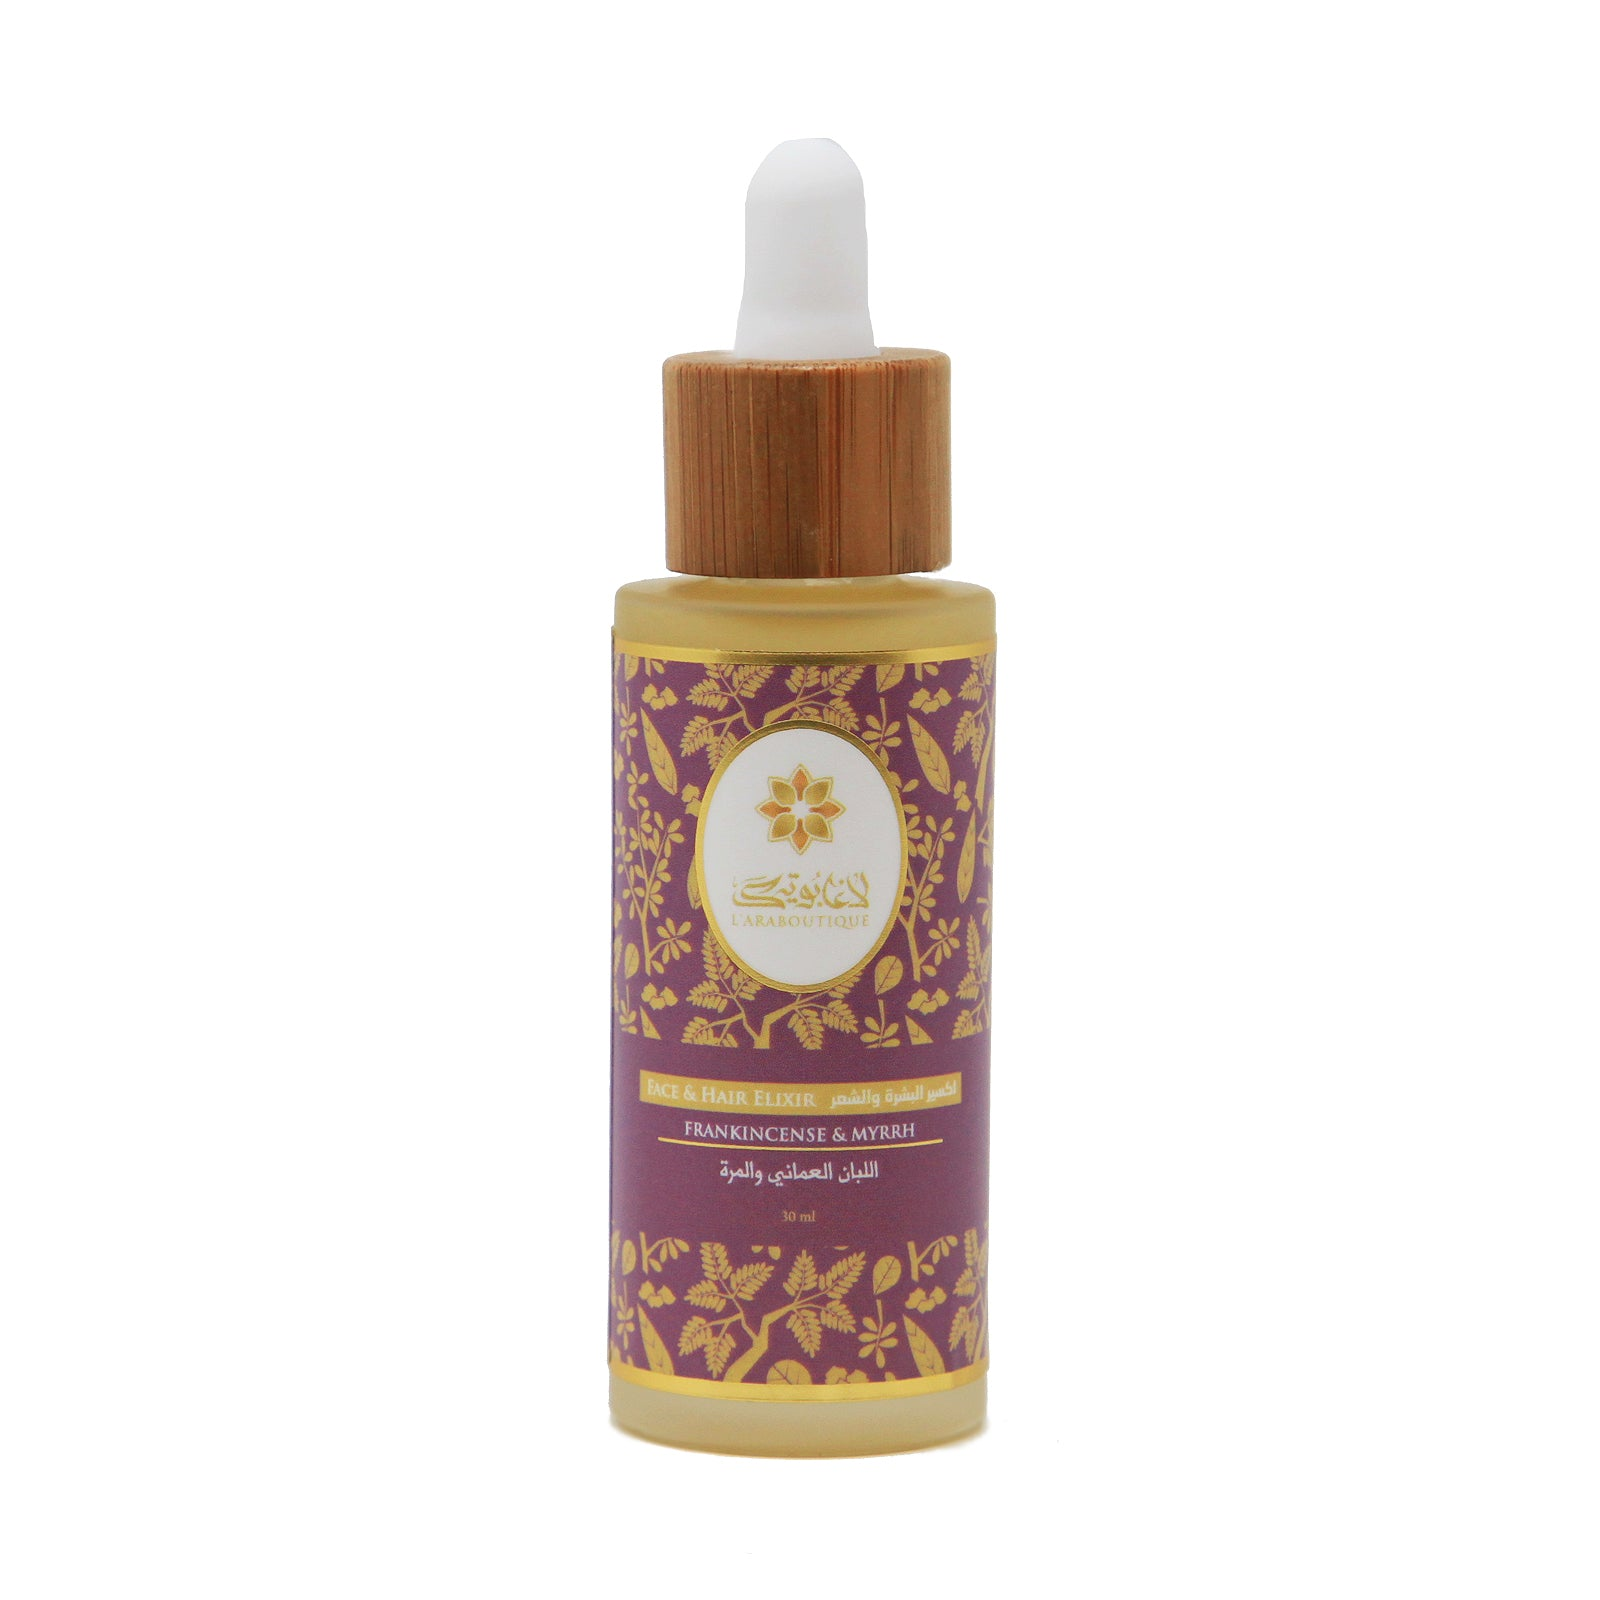 Frankincense and Myrrh Elixir - 30ml